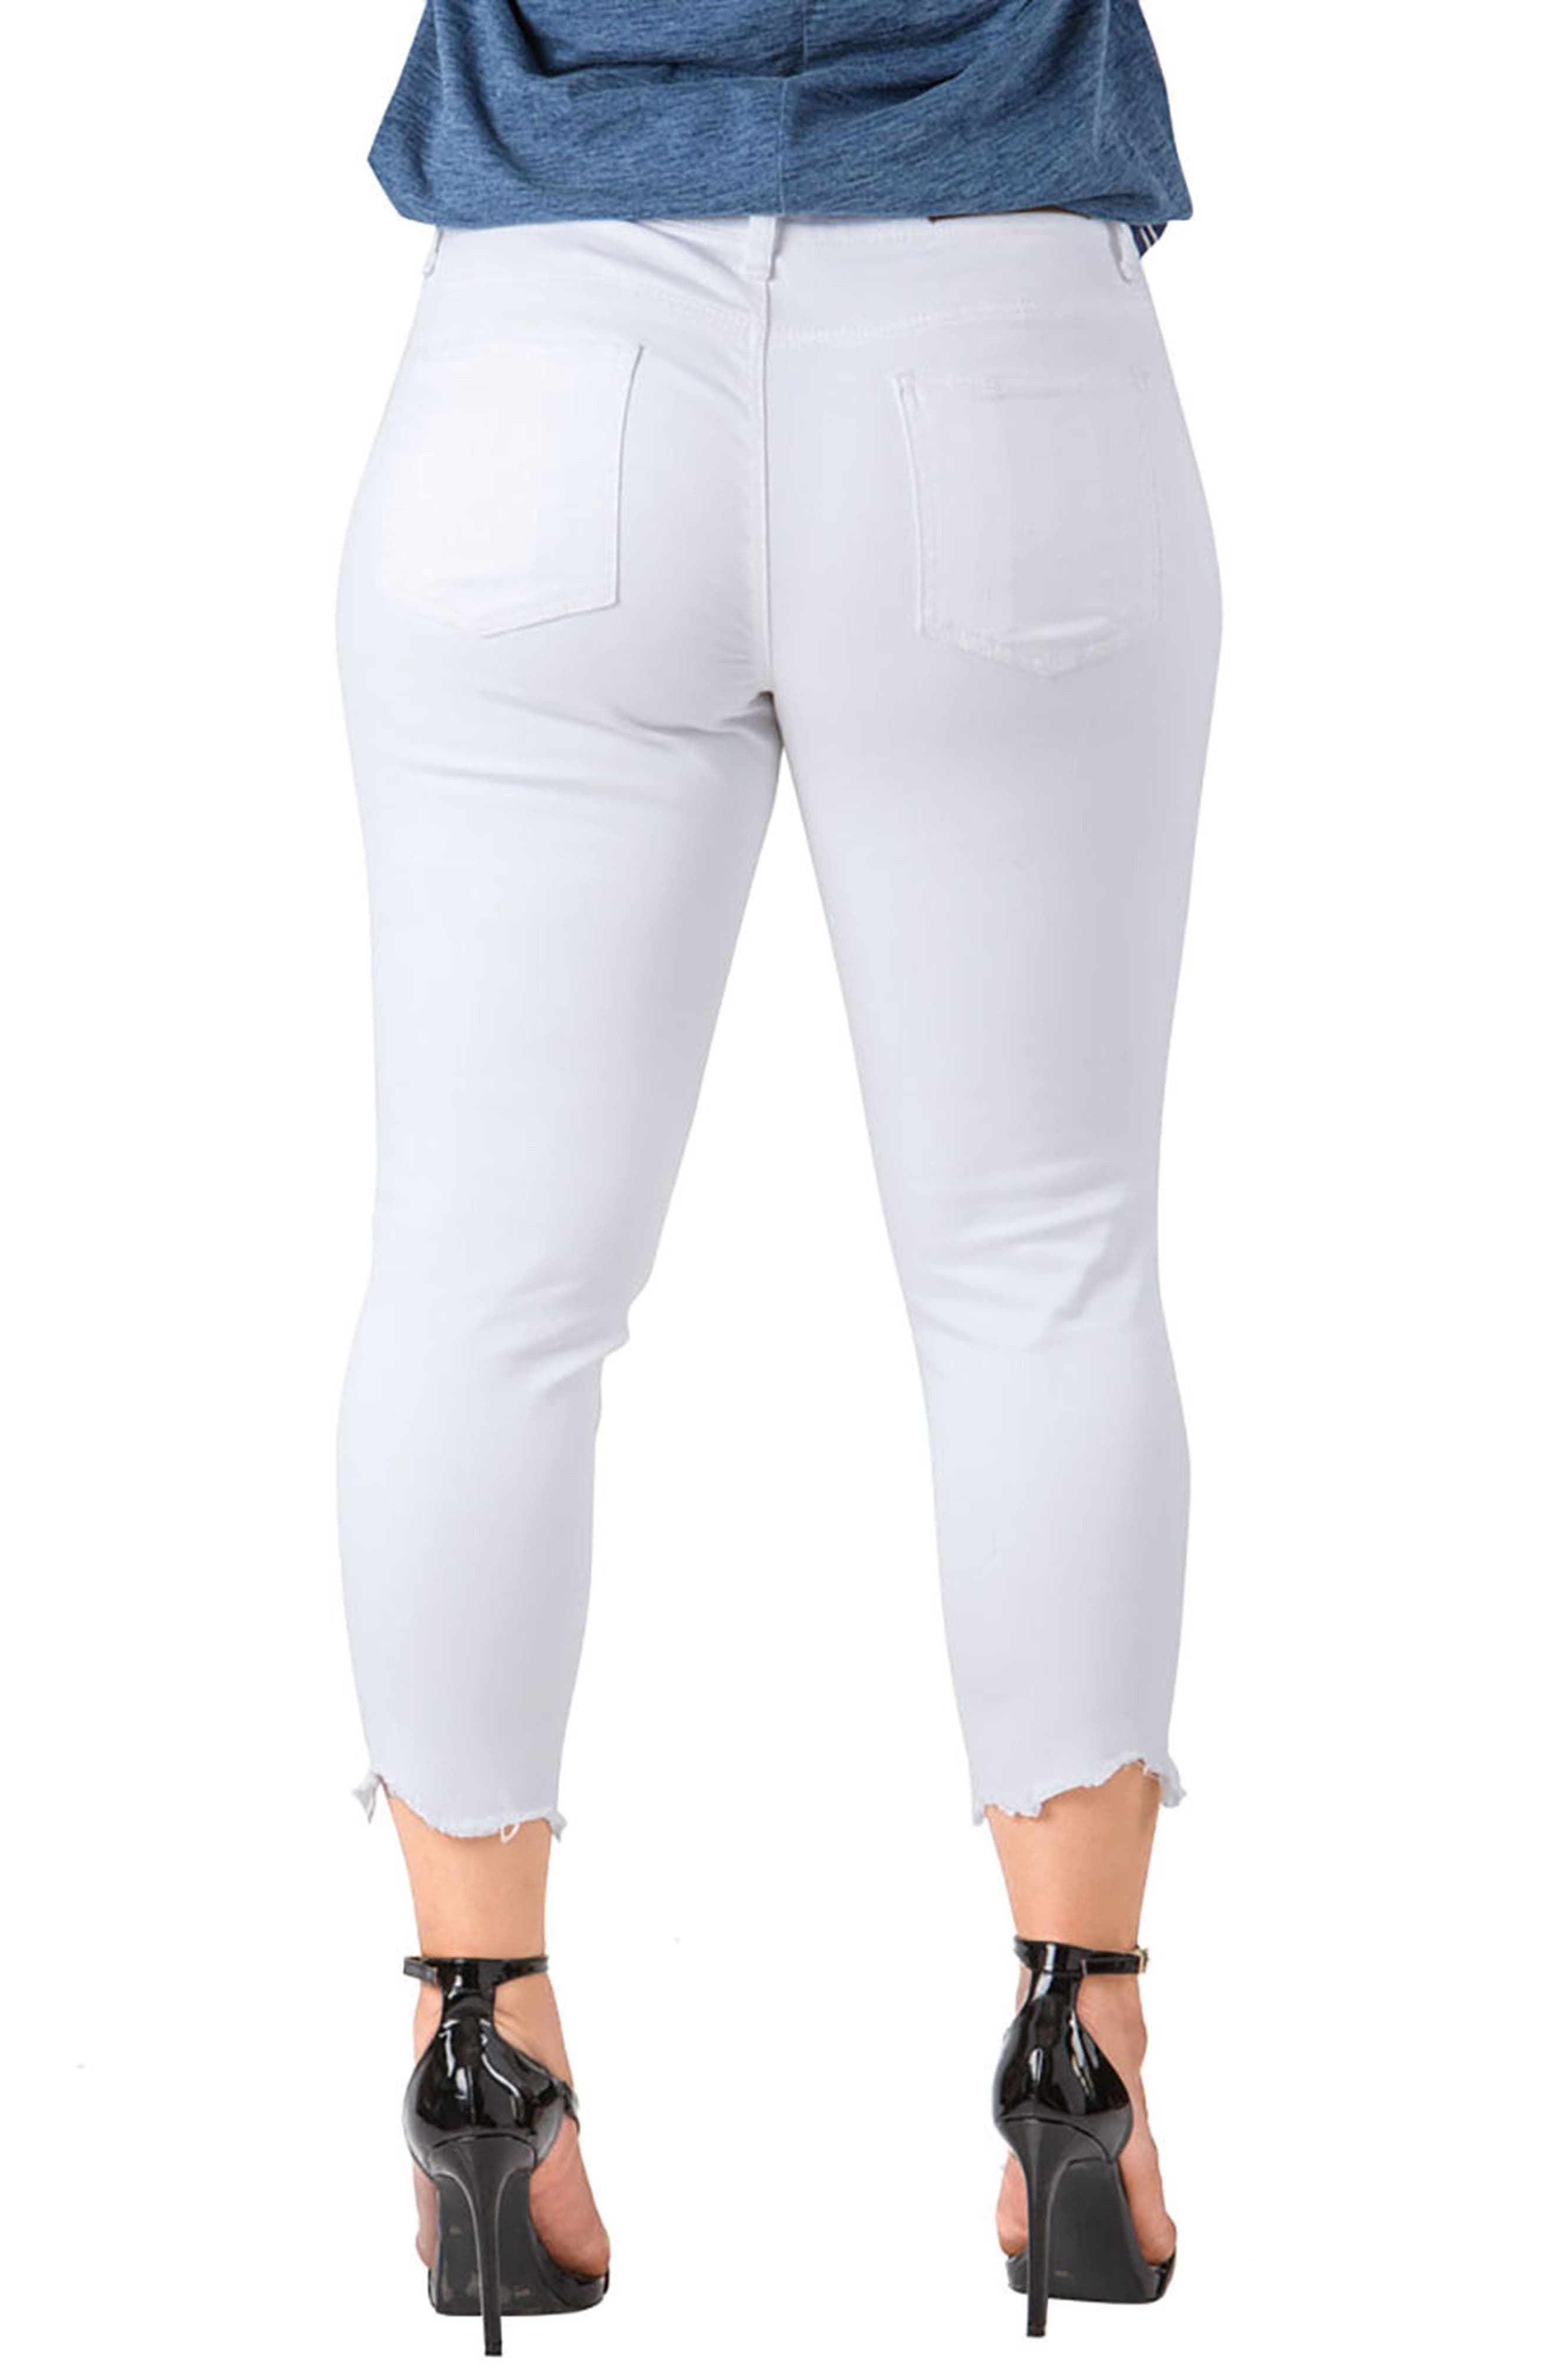 STANDARDS & PRACTICES, Tessa Chewed Hem Stretch Skinny Jeans, Alternate thumbnail 2, color, WHITE